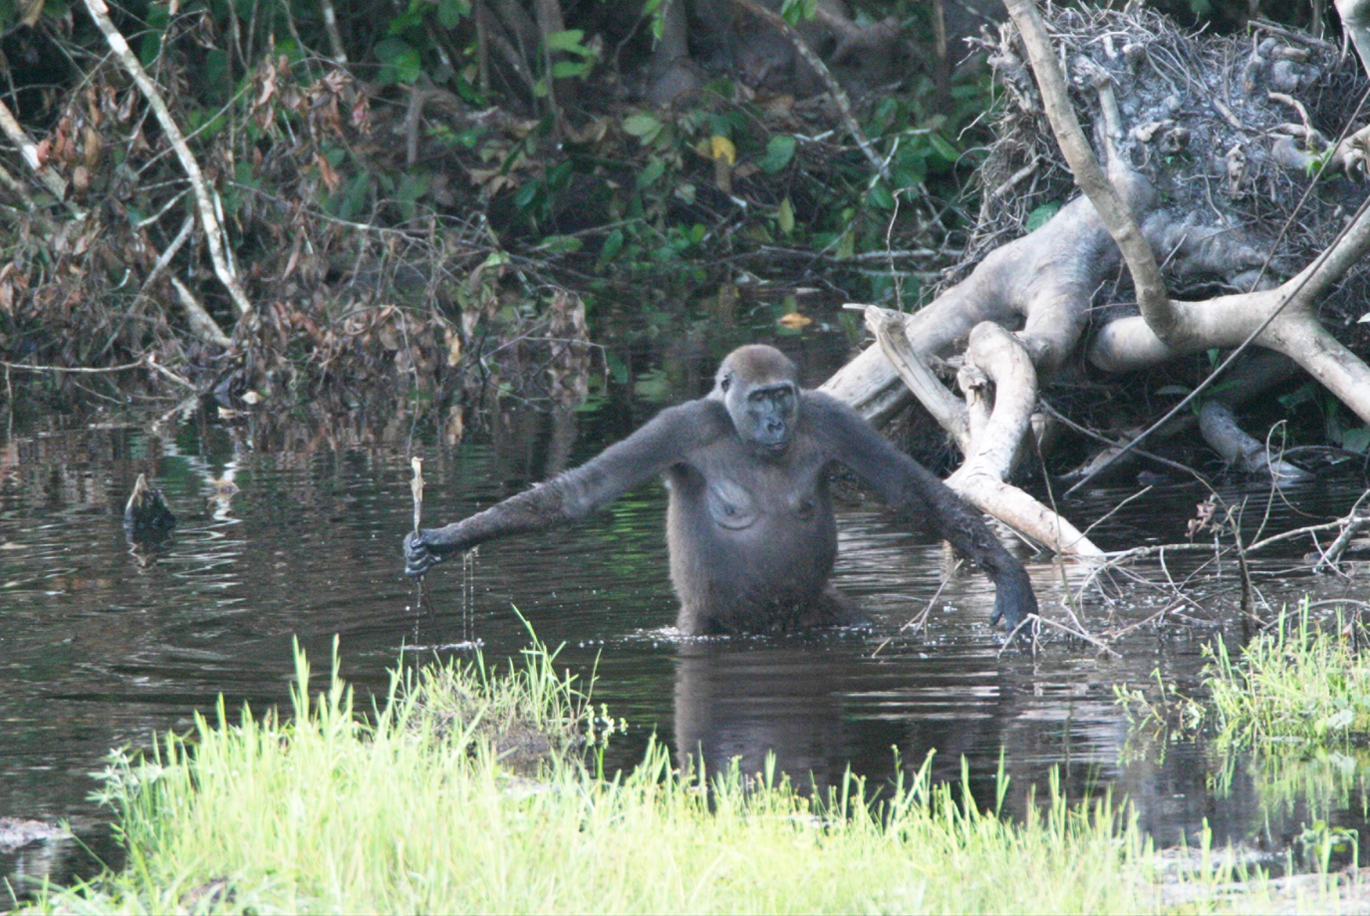 Wild Gorillas Handy with a Stick,  PLoS Biol 3(11): e385, 2005  (Fuente)